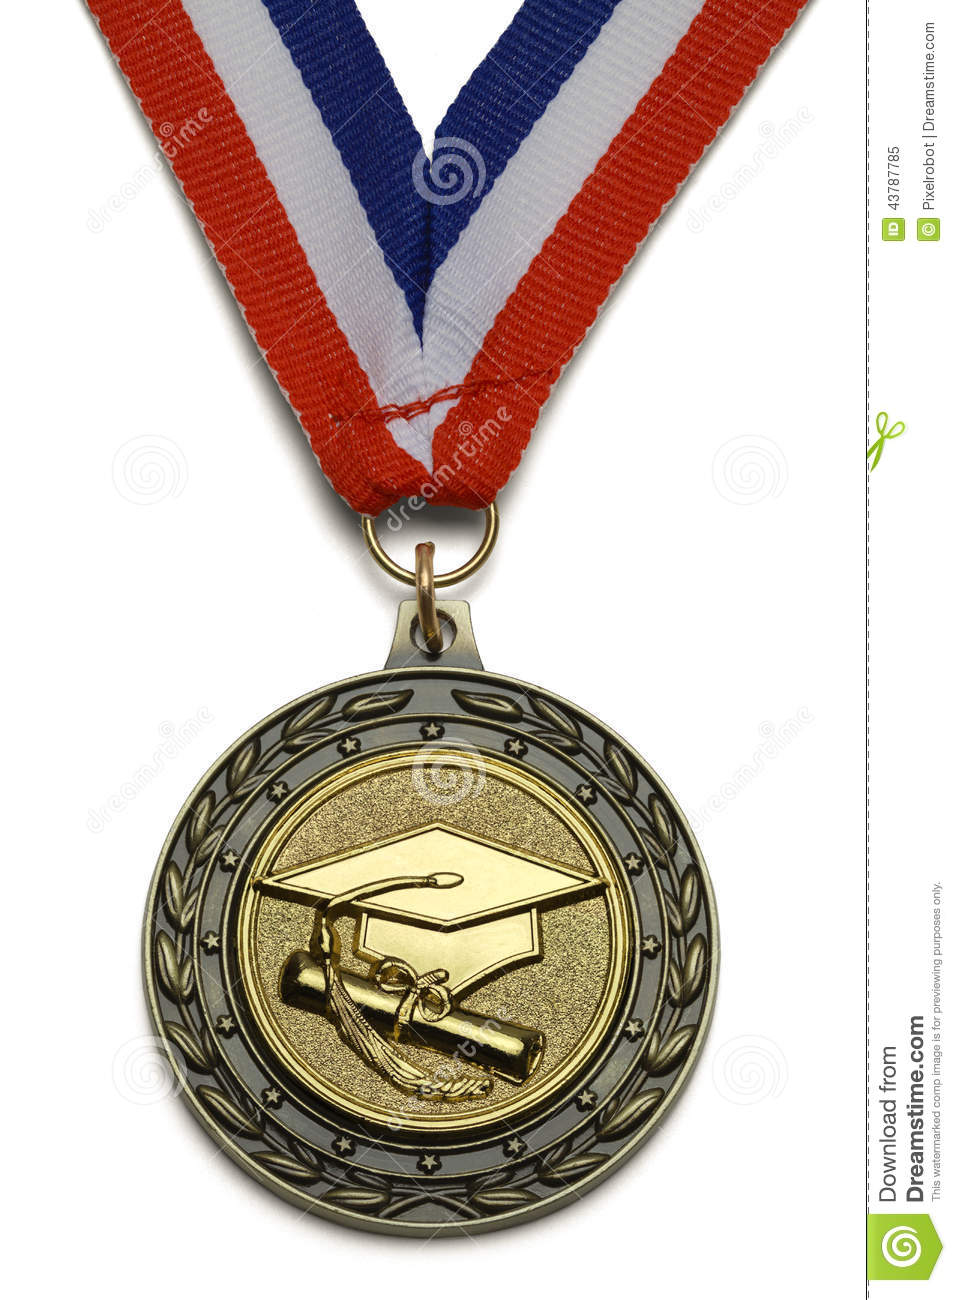 Graduation Medal Stock Photo Image 43787785